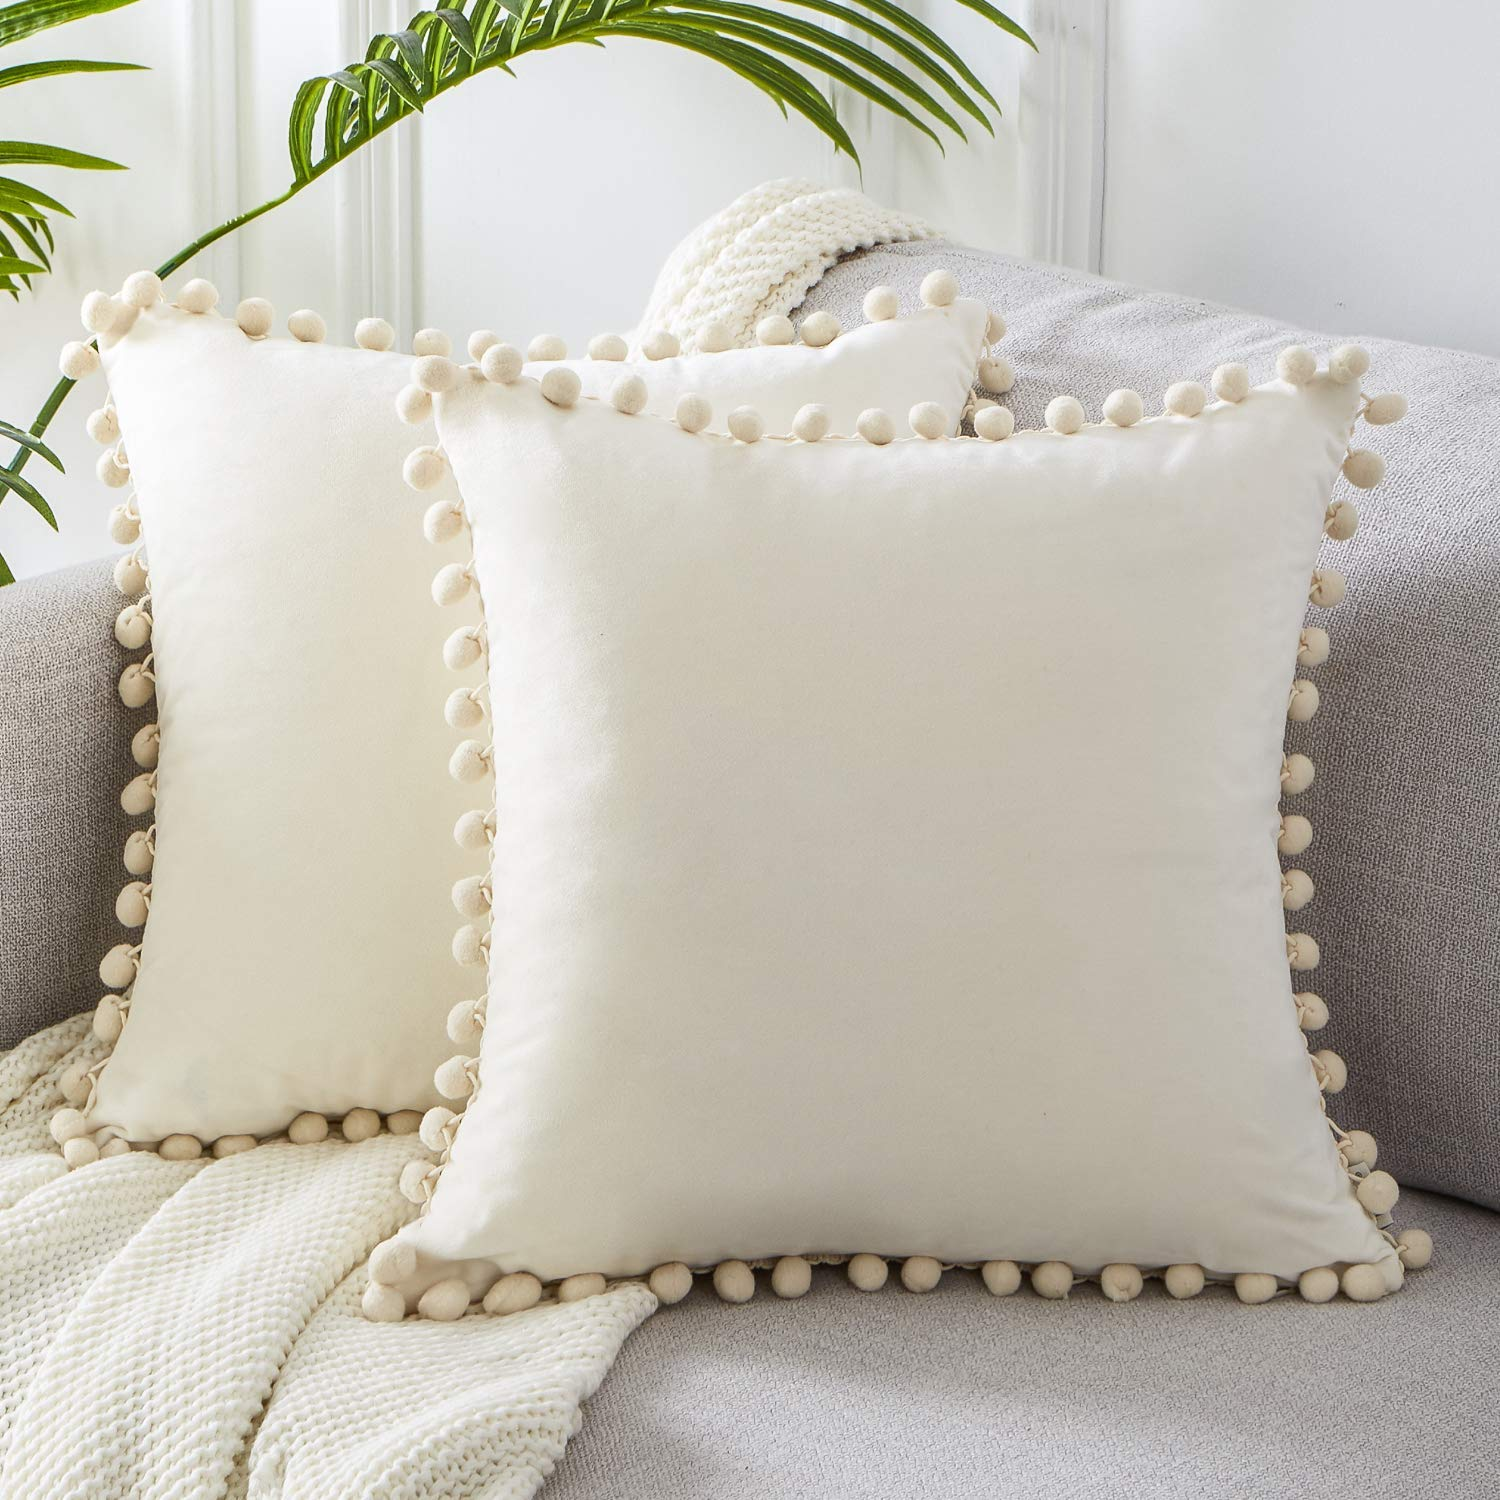 Pom pom tassel pillow covers from Amazon.